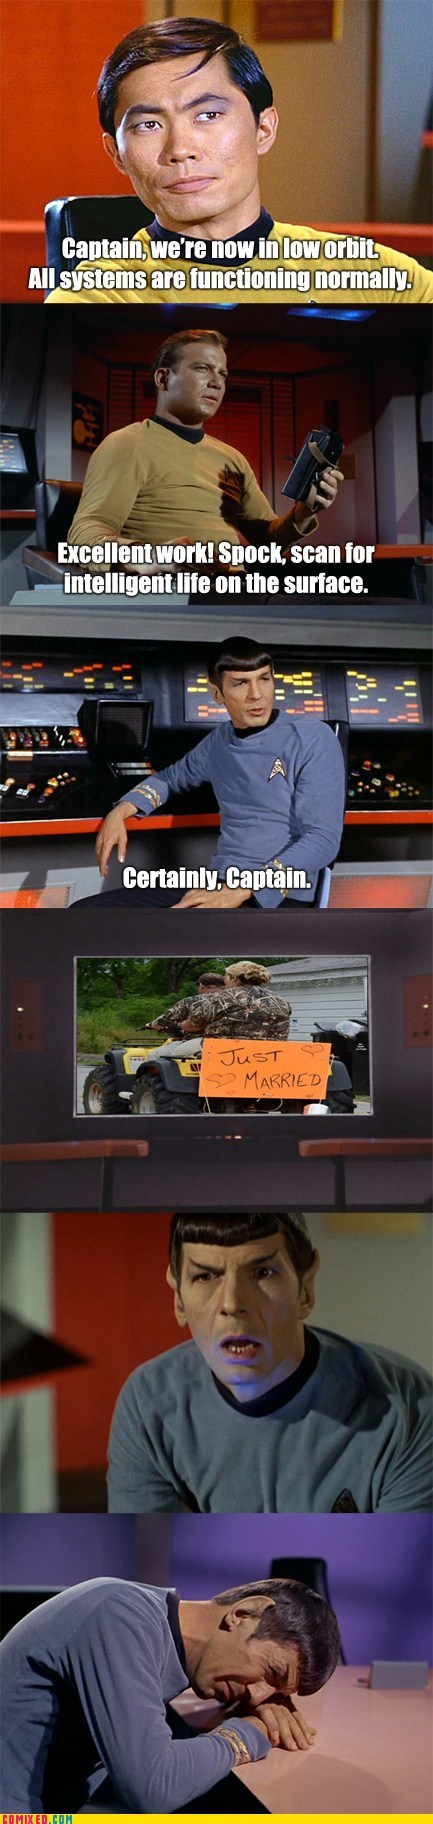 Captain Kirk,Spock,wedding,honey boo-boo,Star Trek,William Shatner,funny,george takei